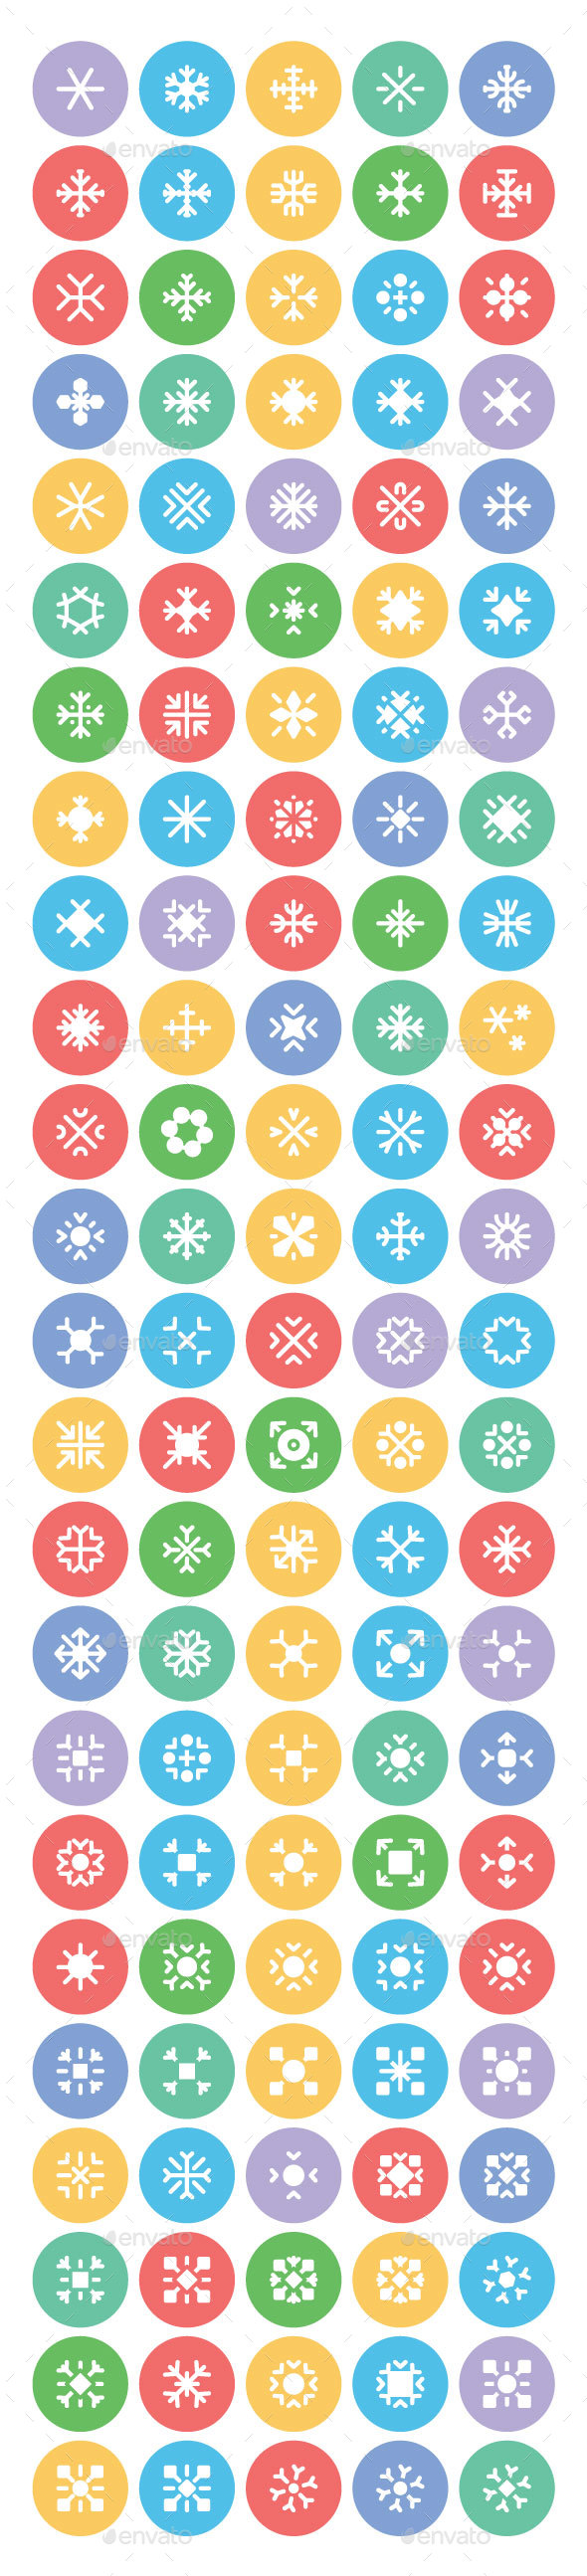 100+ Snow Flakes Vector Icons - Icons